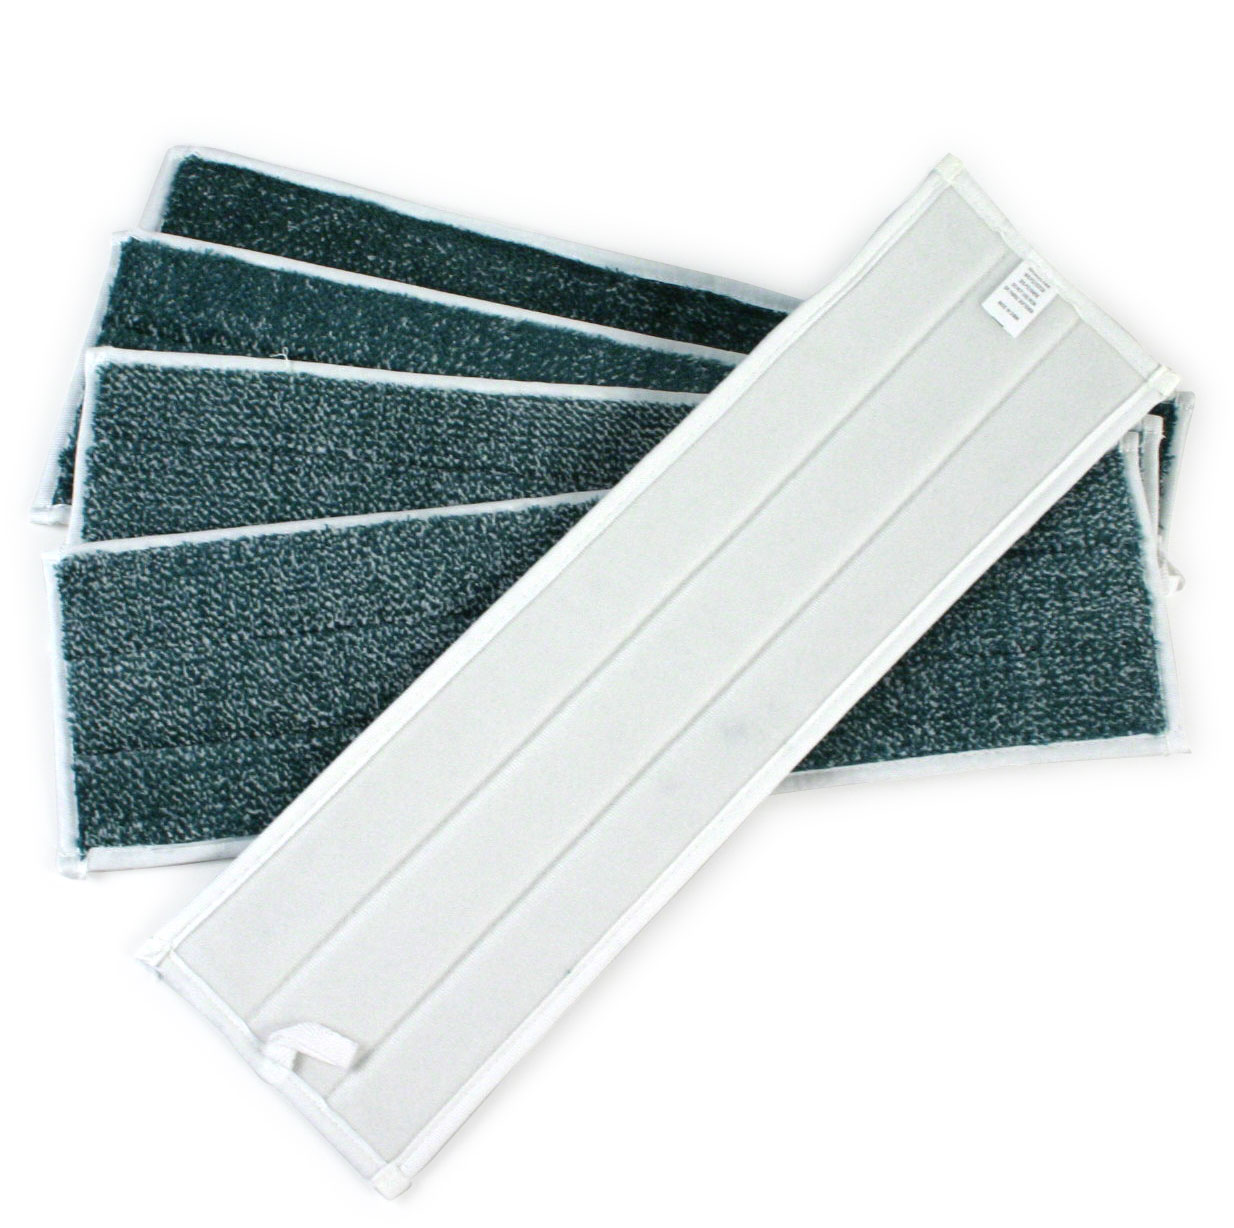 18-inch Microfiber Wax Pads - 5 Pack - Green